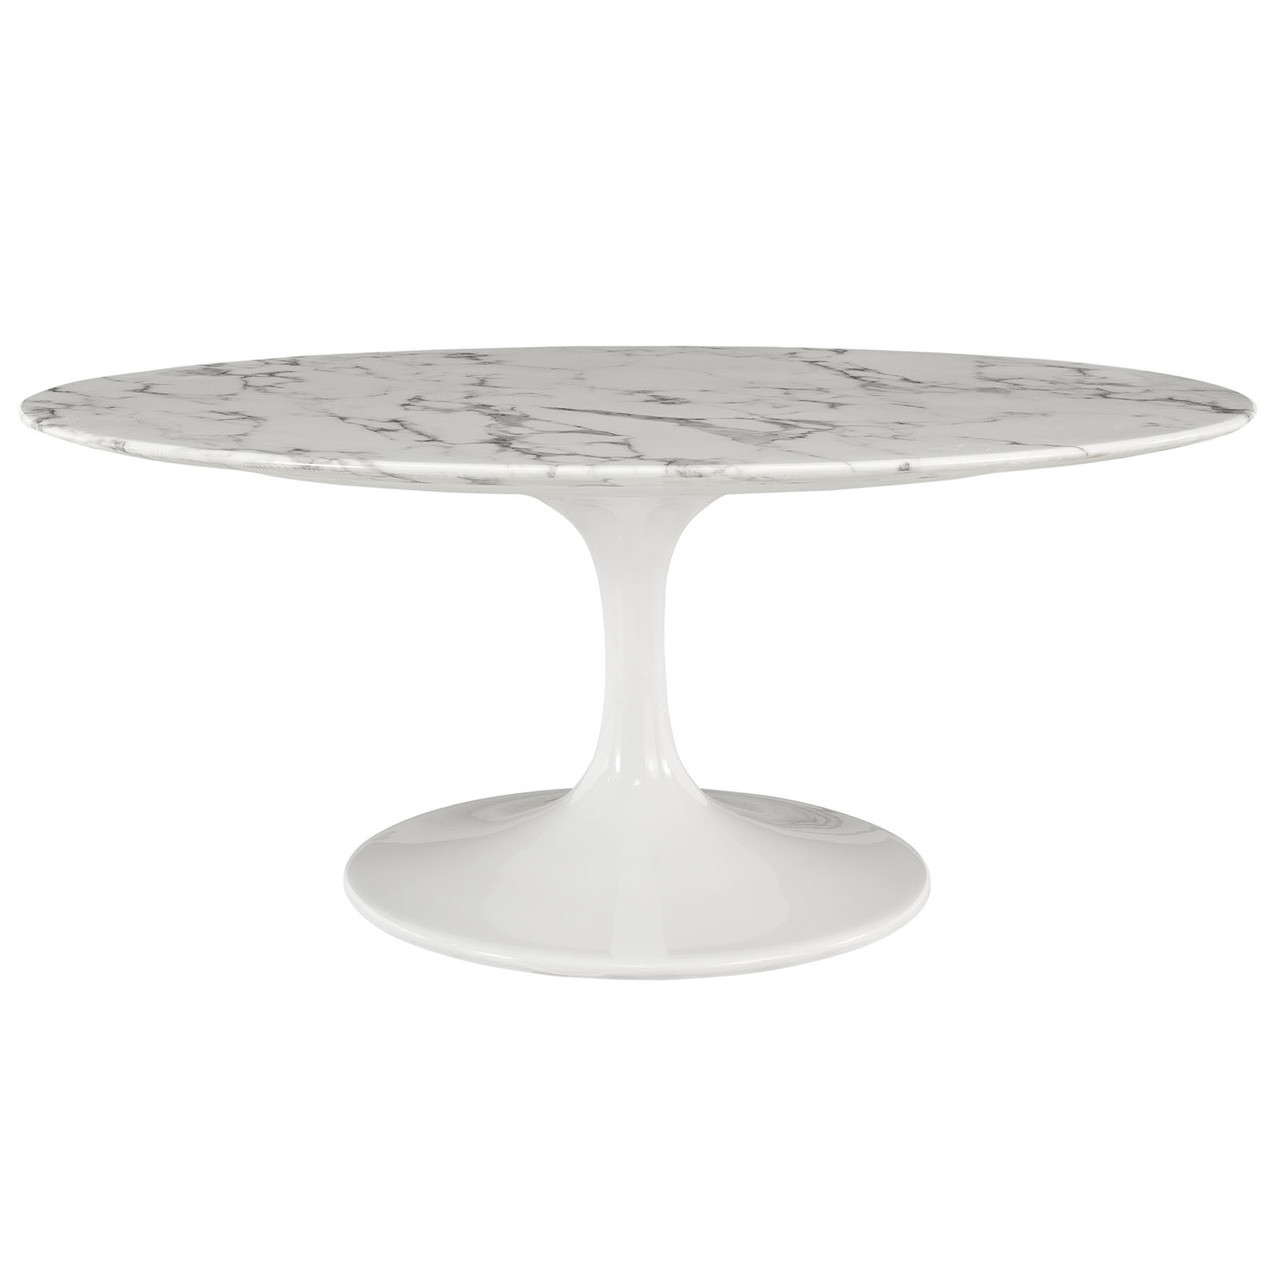 "Lippa 42"" Oval-Shaped Artificial Marble Coffee Table"